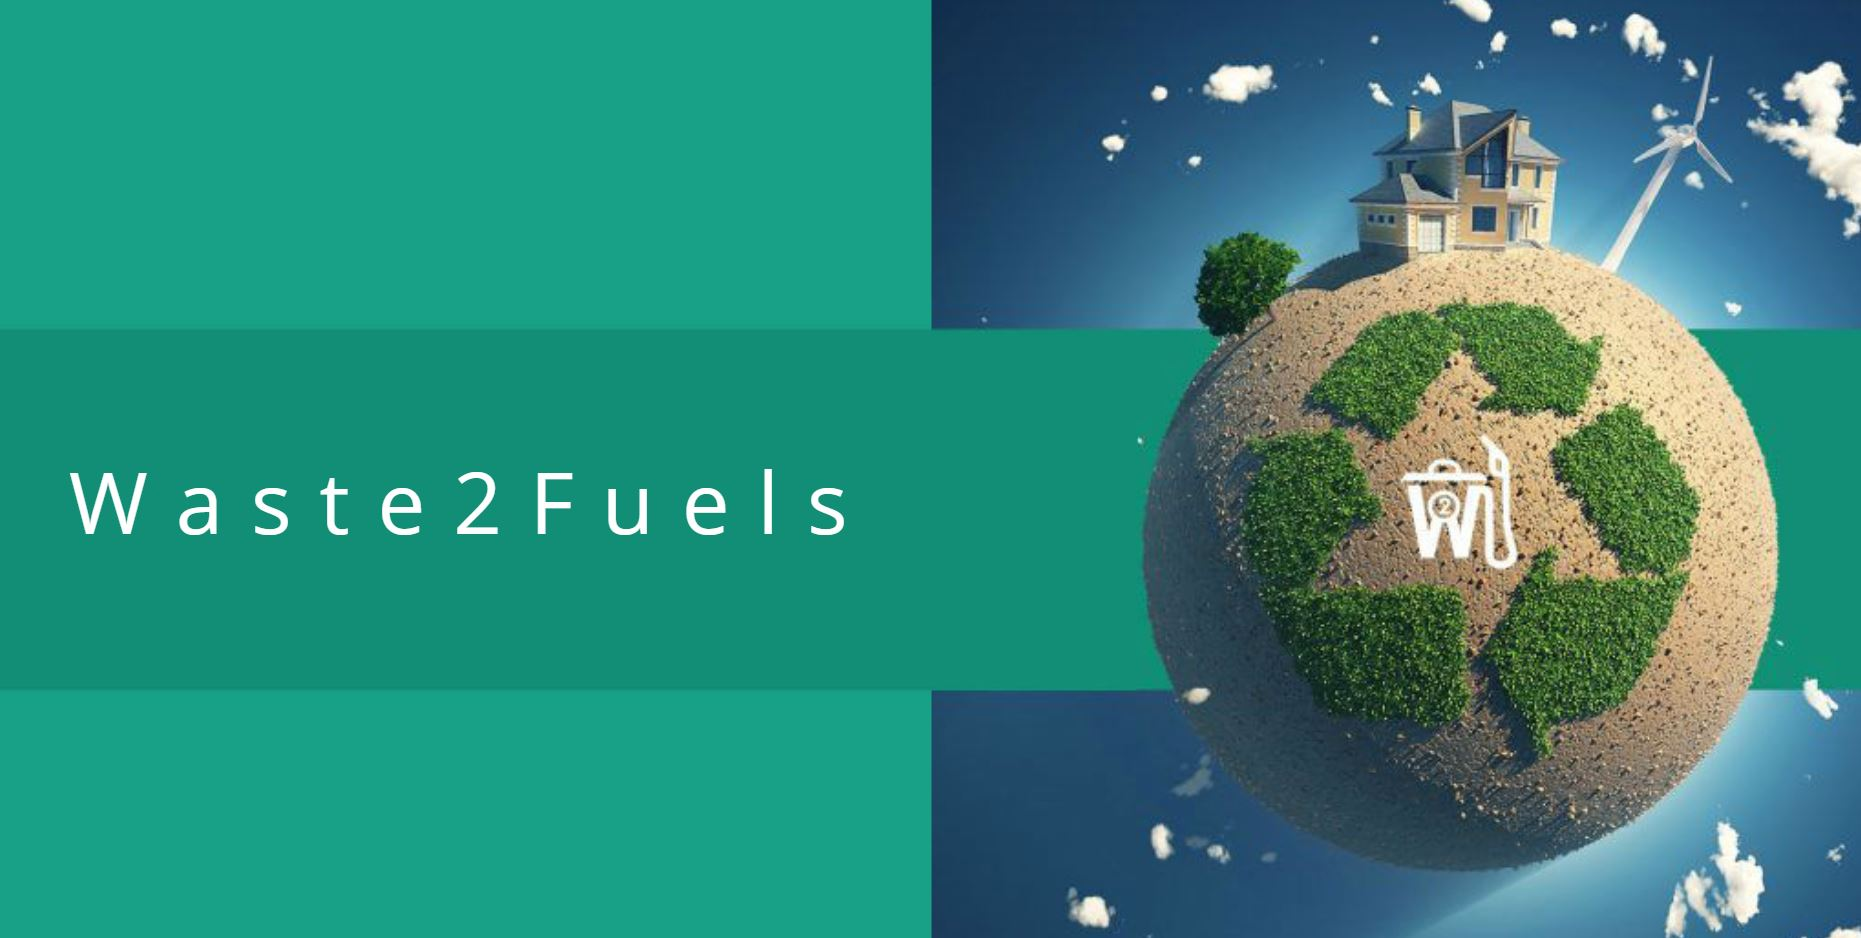 Sustainable production of next generation biofuels from waste streams (Waste2fuels)